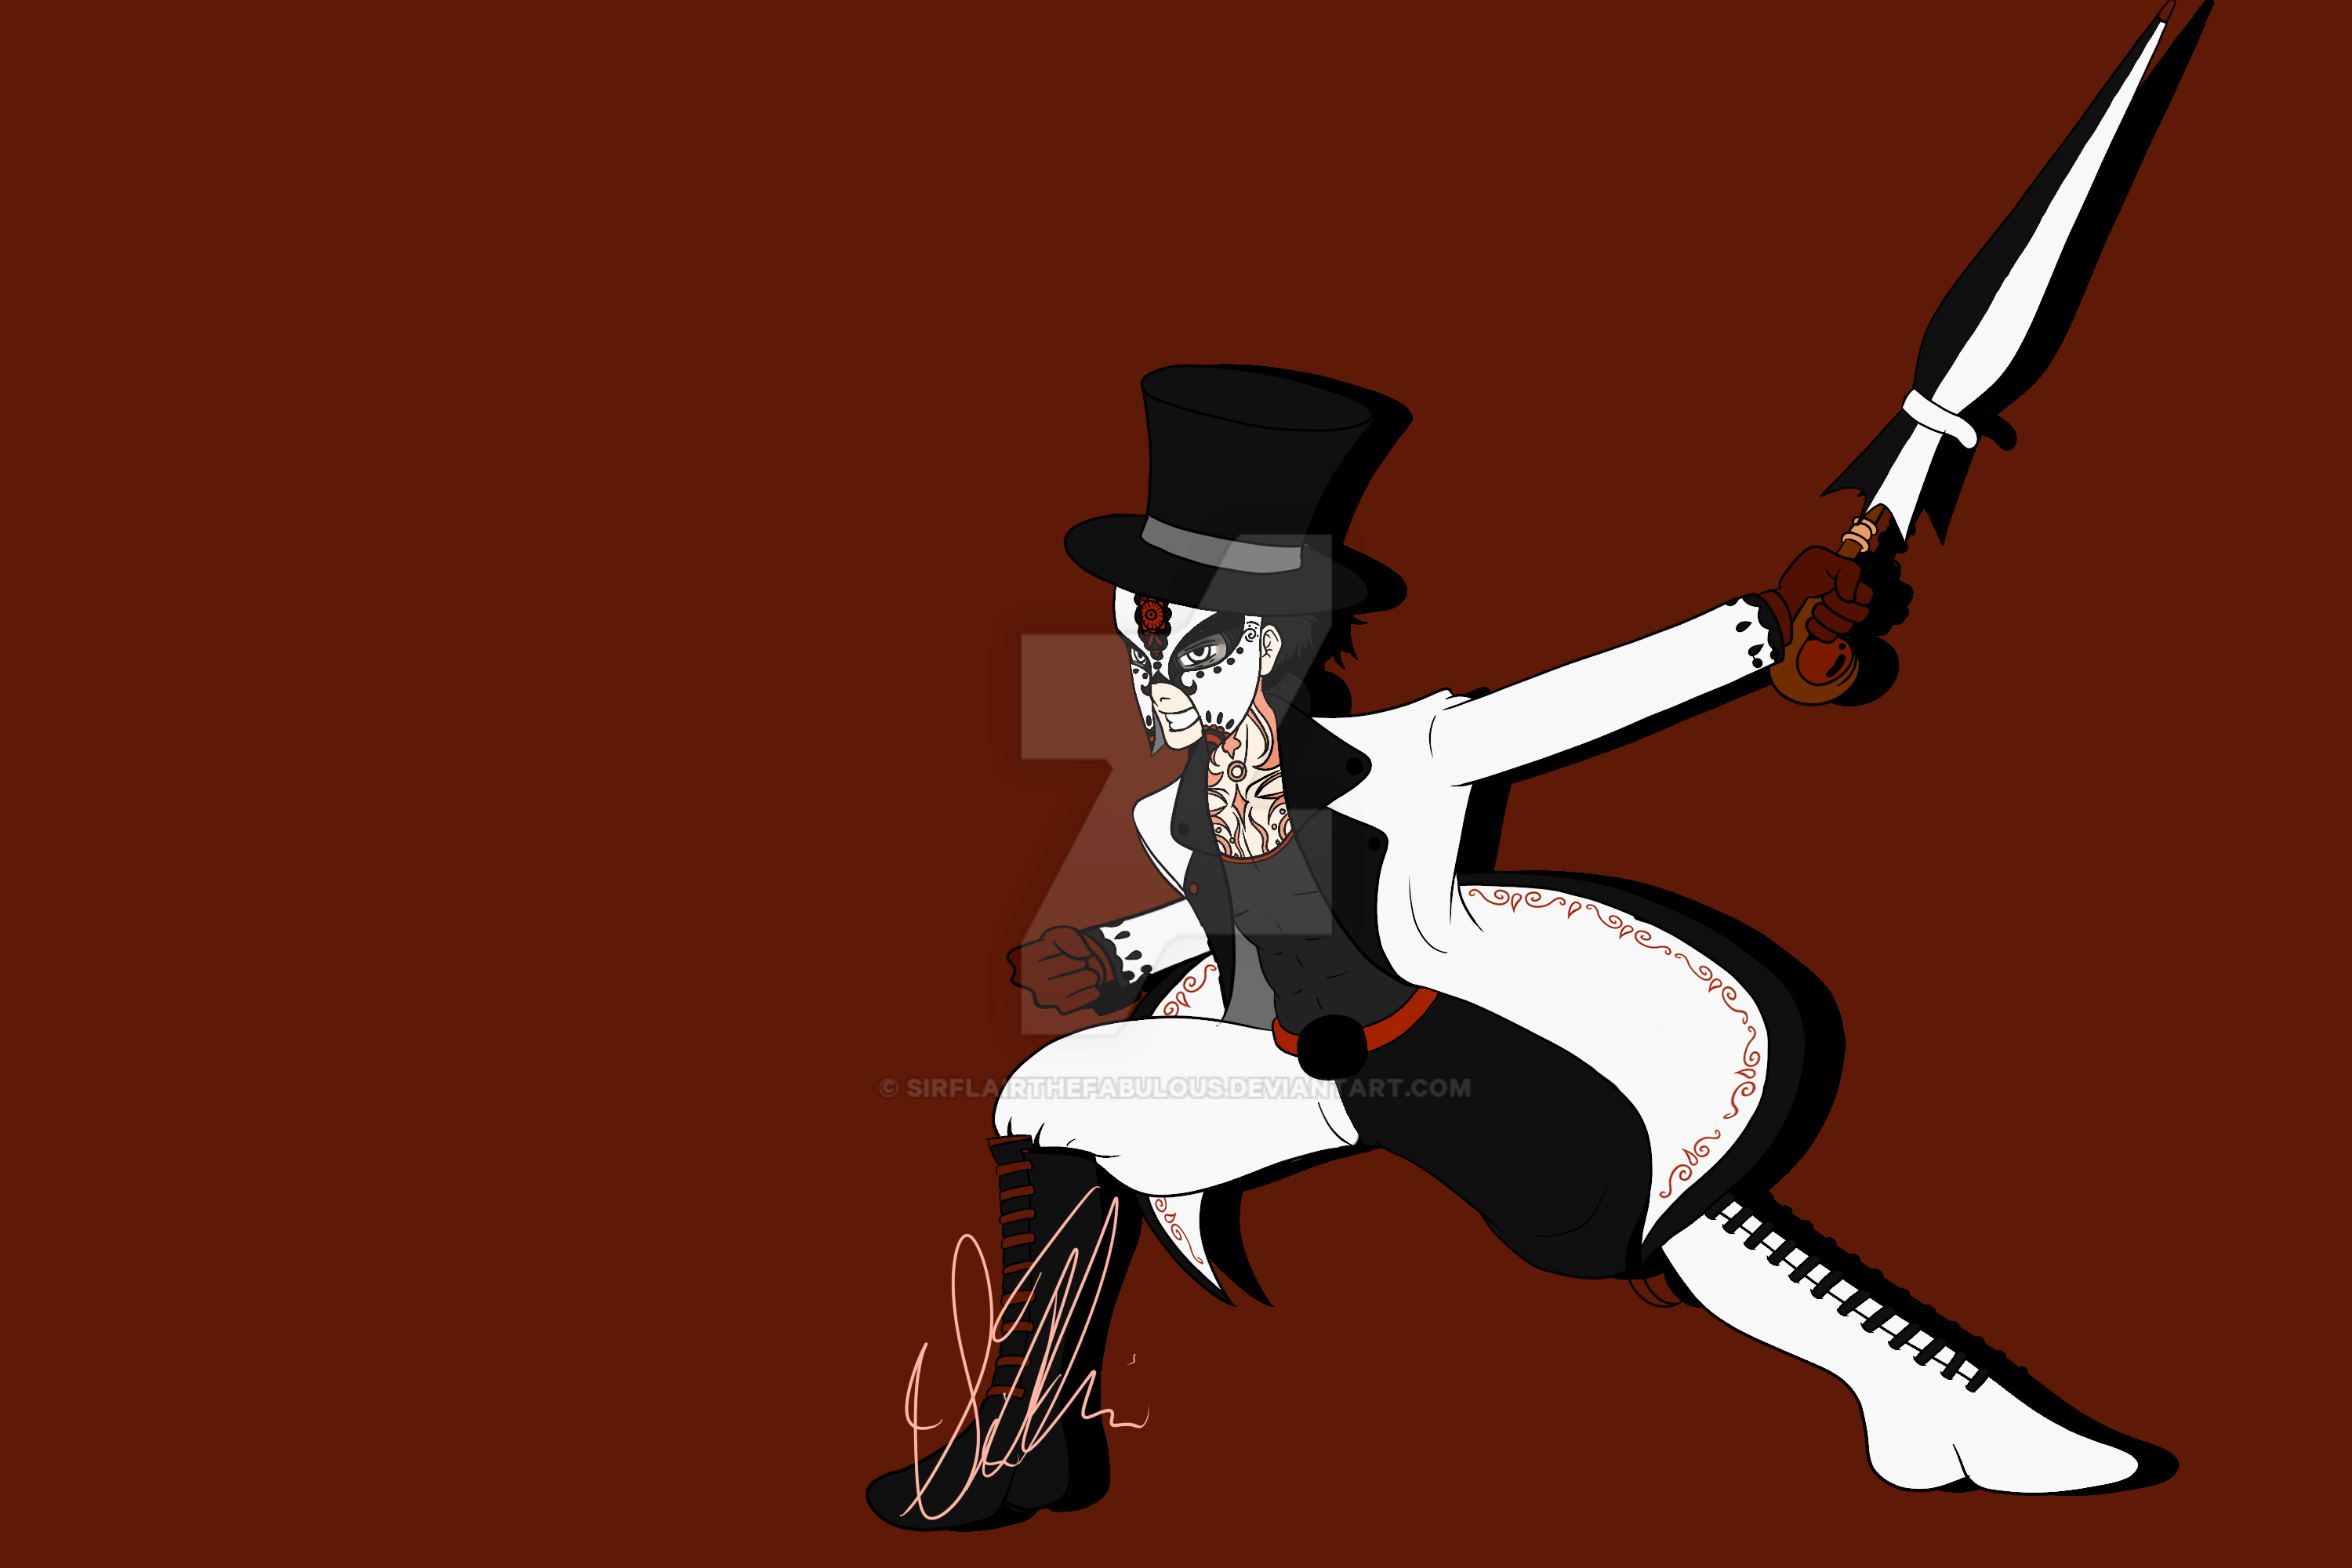 The Ringmaster by SirFlairTheFabulous